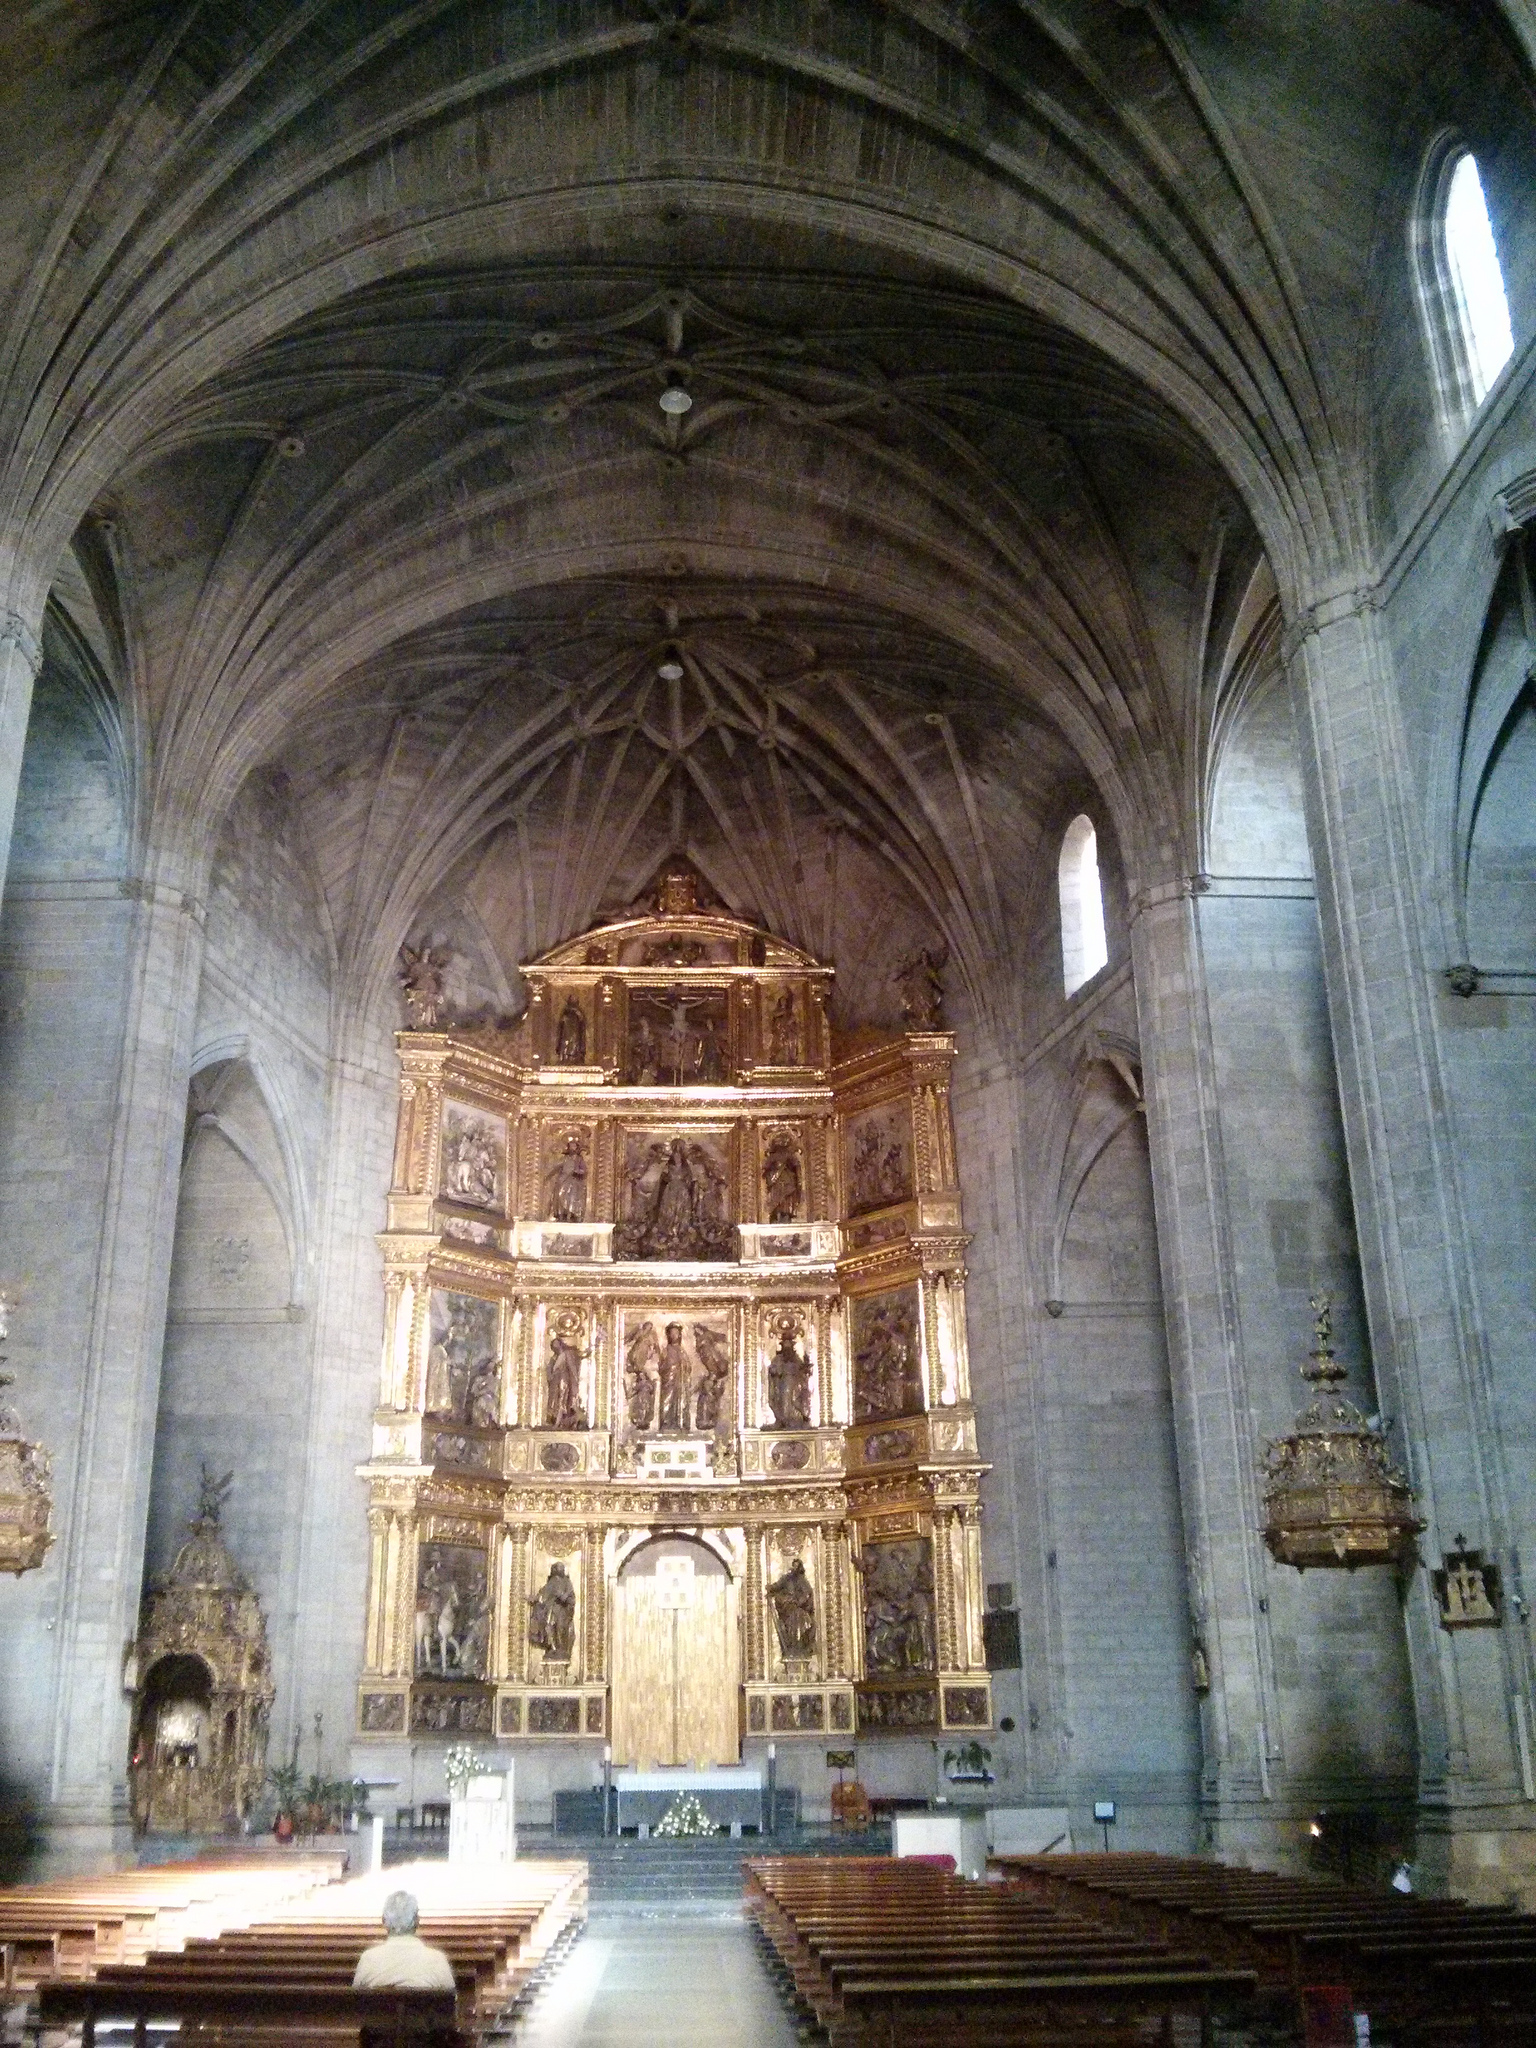 Interior of the Cathedral of Santa María la Redonda in Logroño